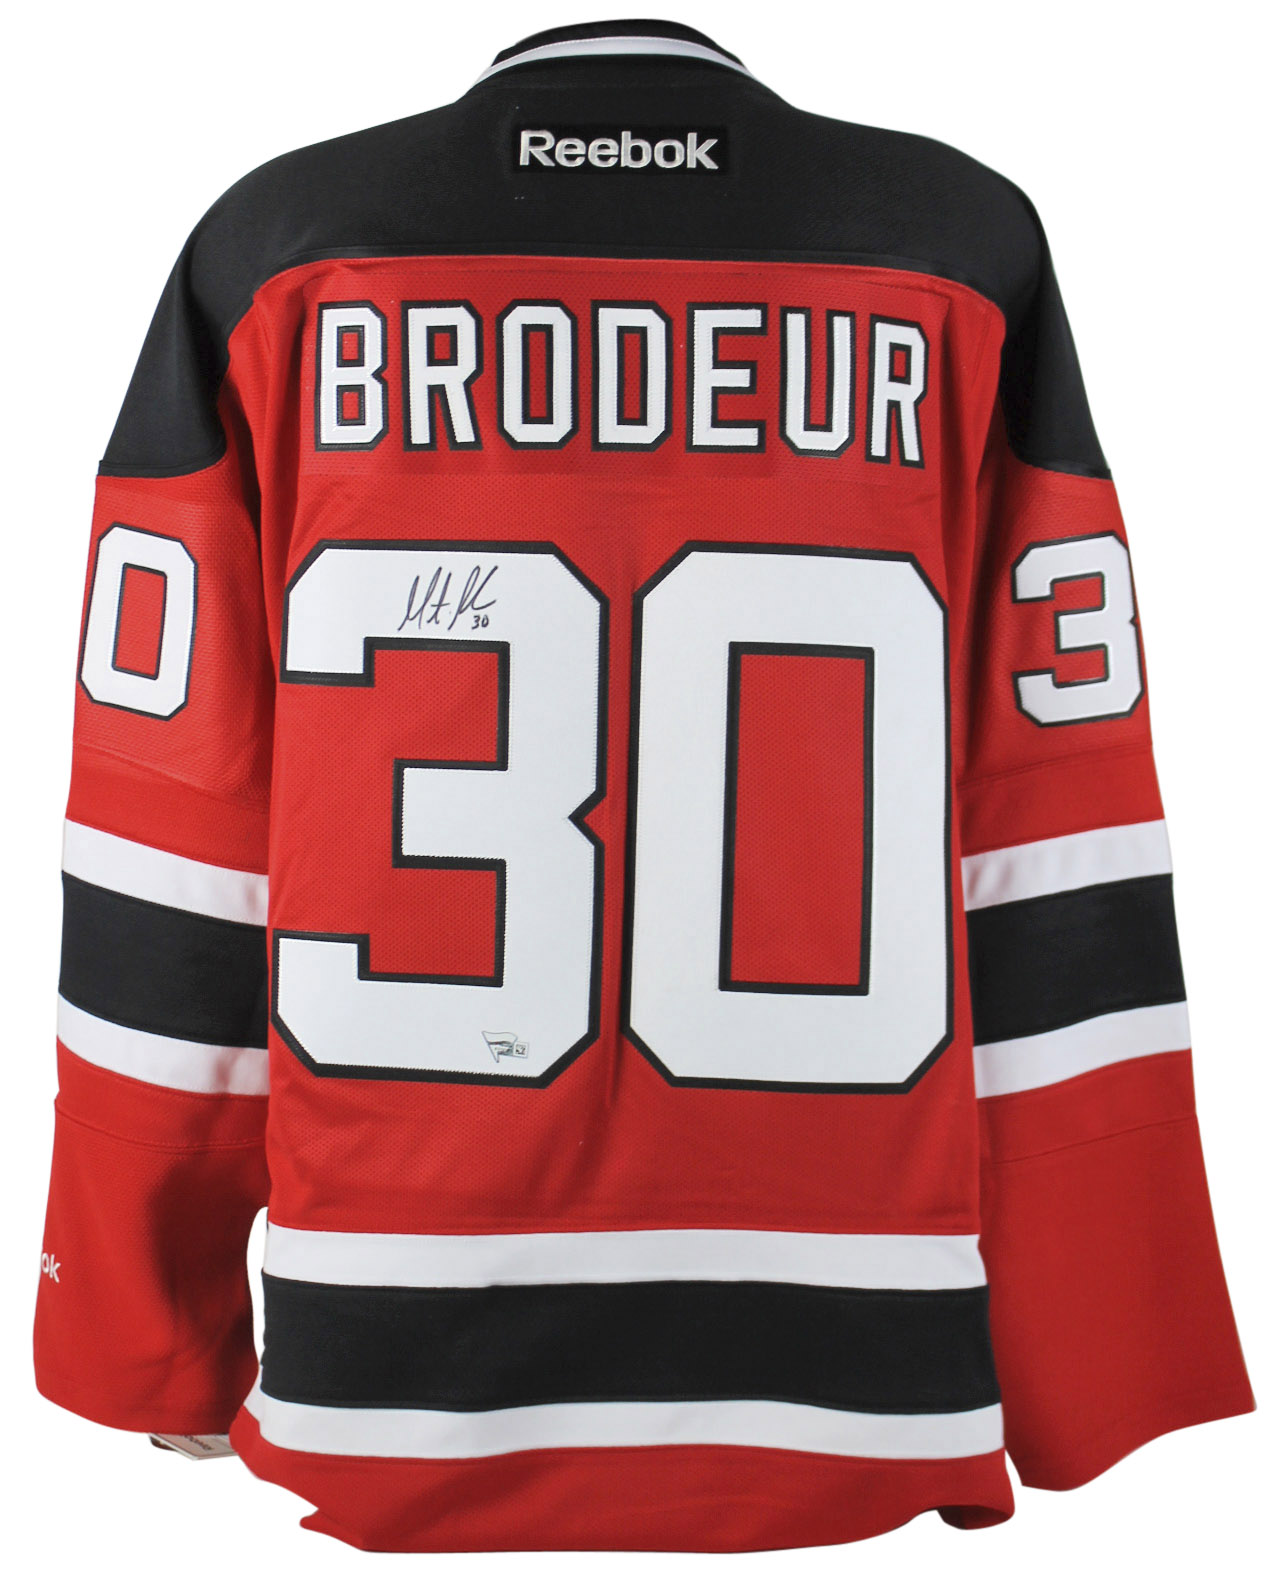 Devils Martin Brodeur Authentic Signed Red Reebok Jersey Fanatics COA #A310383